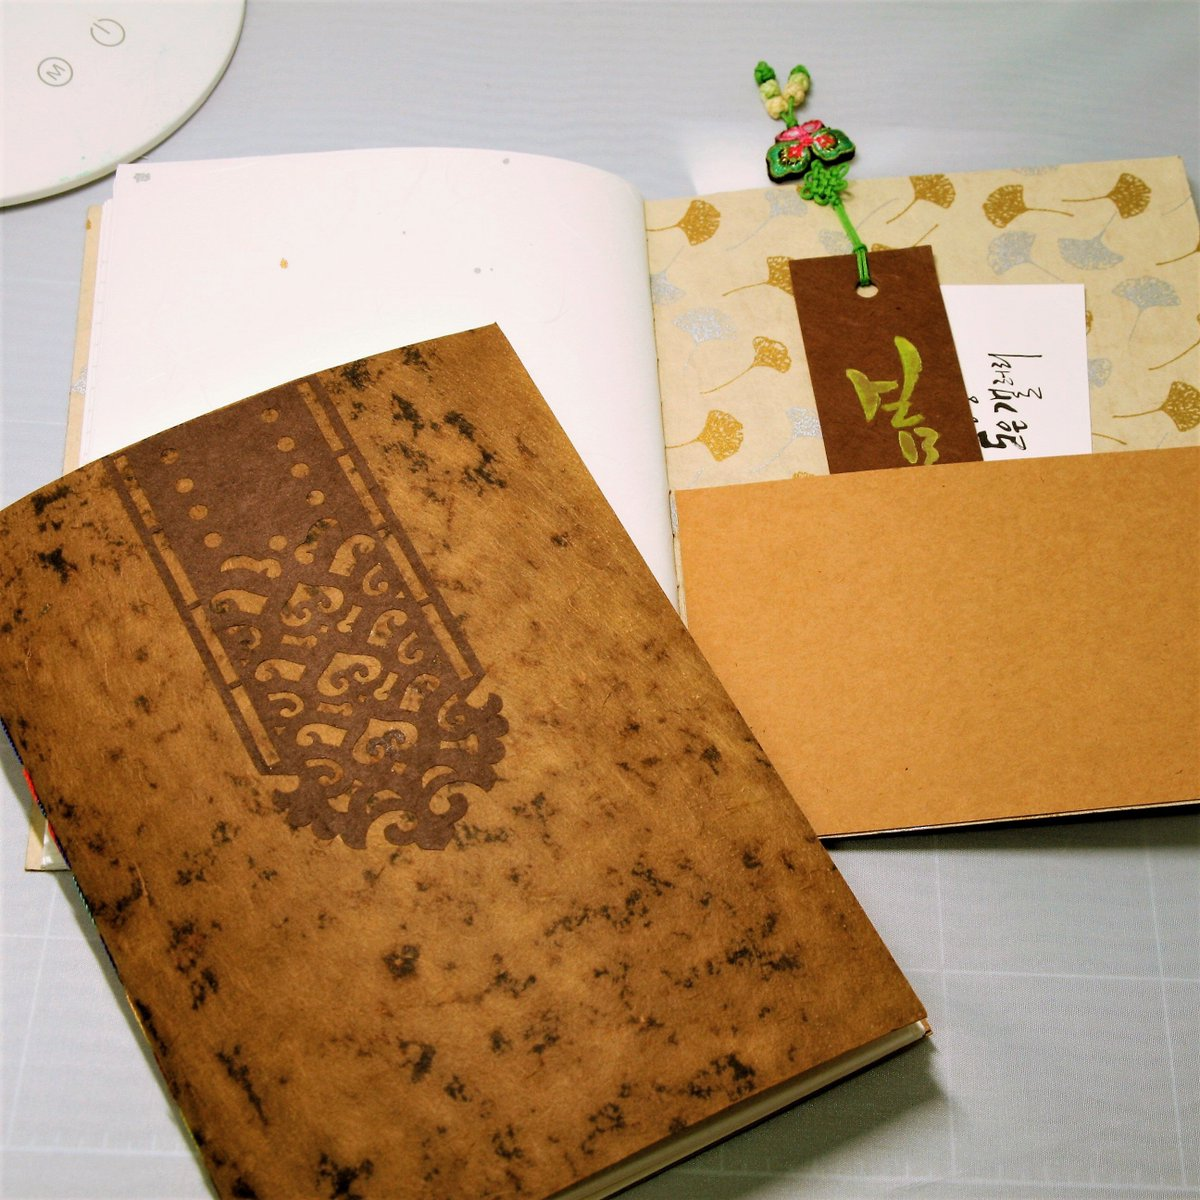 Excited to share the latest addition to my #etsy shop: Hanji notebook(Vintage version), traditional Korean paper handmade from 'paper mulberry tree' https://etsy.me/2Sx9eVa #booksandzines #journal #white #red #hanji #paper #korea #koreanstyle #traditional